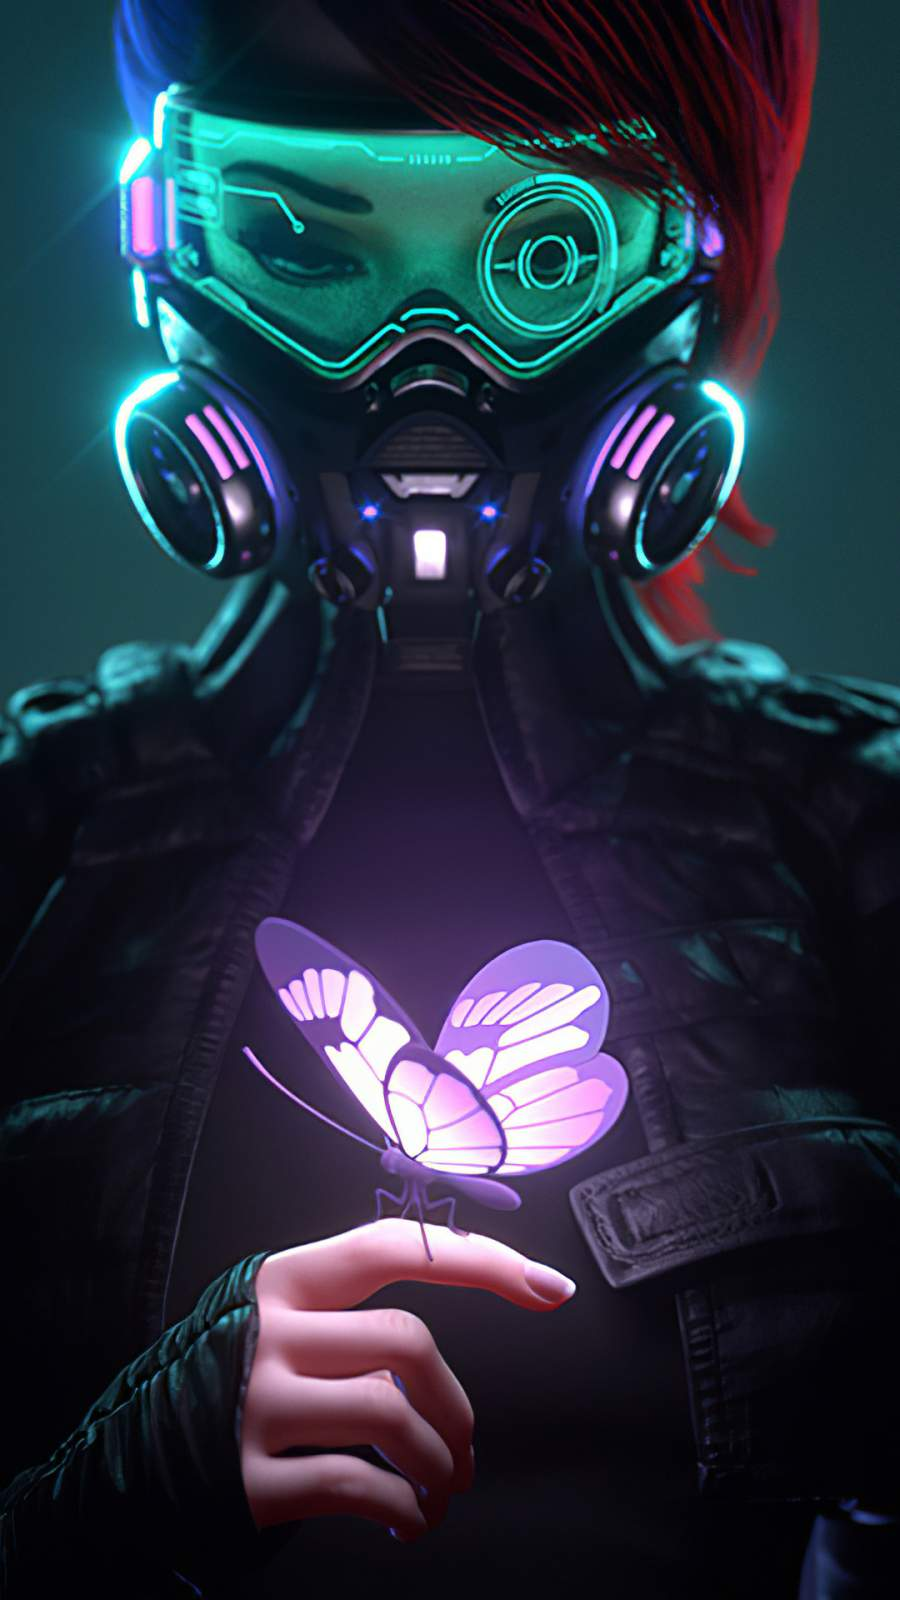 Cyberpunk Girl in a Gas Mask Looking at the Glowing Butterfly iPhone Wallpaper